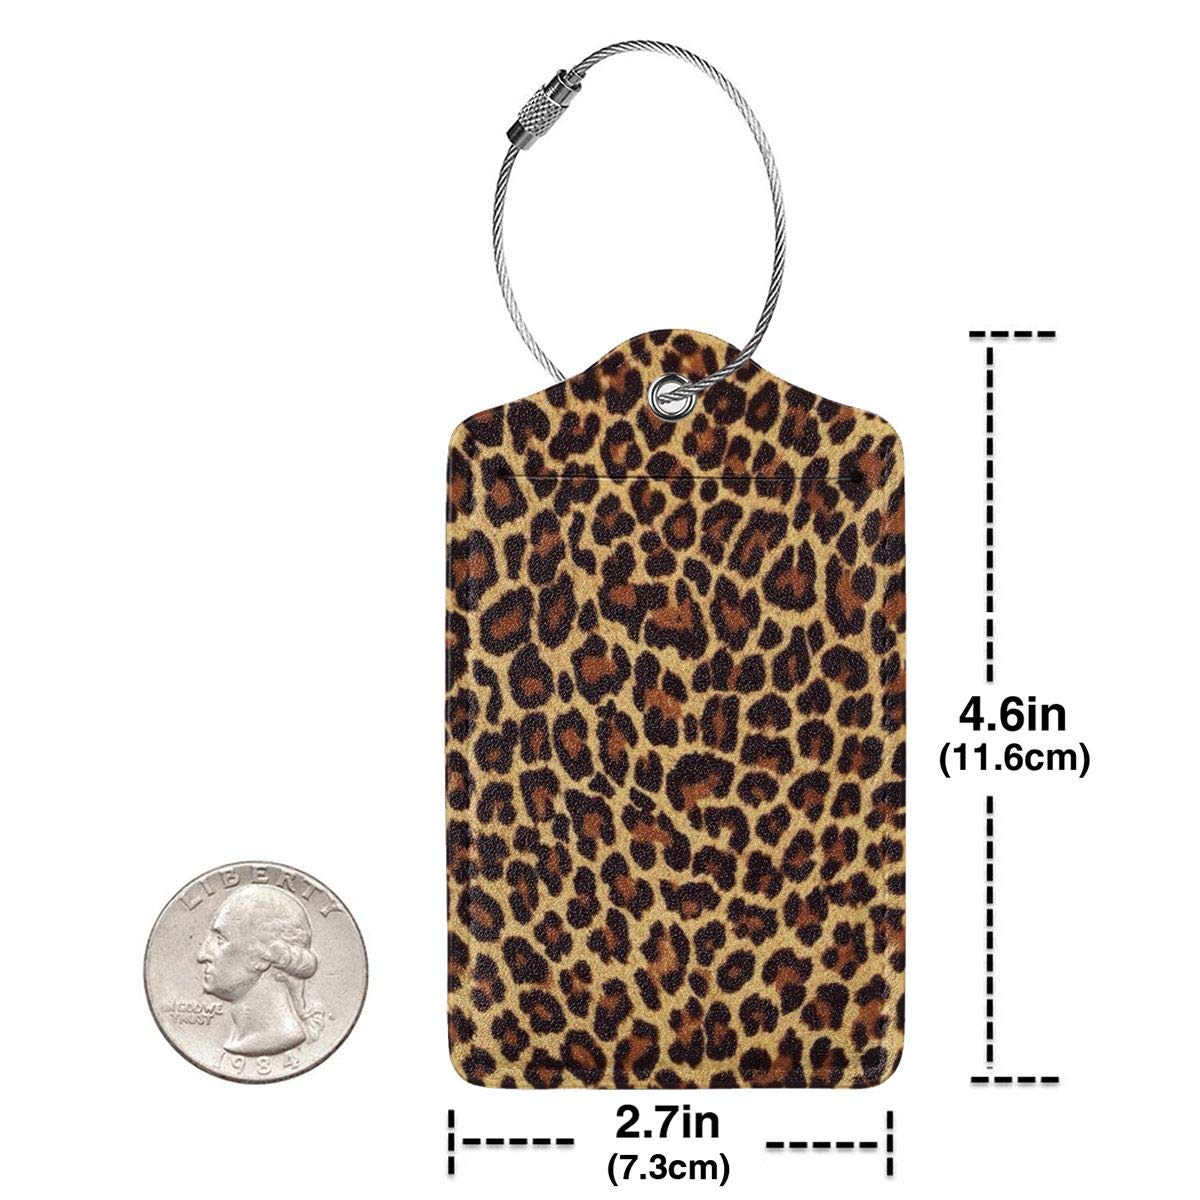 Leopard Skin Luggage Tag Label Travel Bag Label With Privacy Cover Luggage Tag Leather Personalized Suitcase Tag Travel Accessories